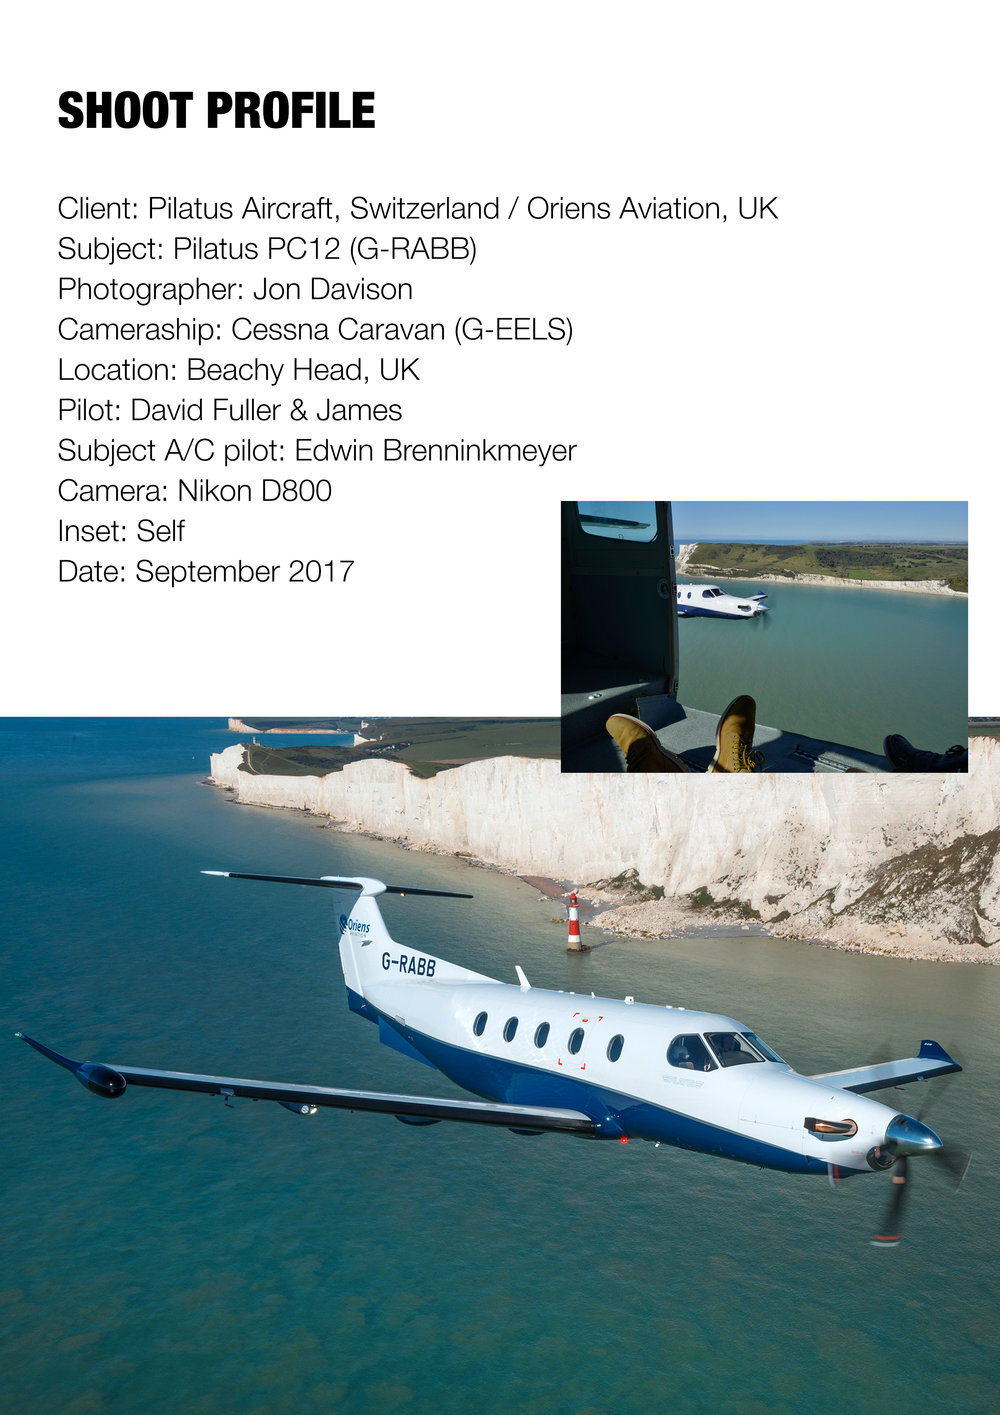 Pilatus PC12, Beachy Head, UK